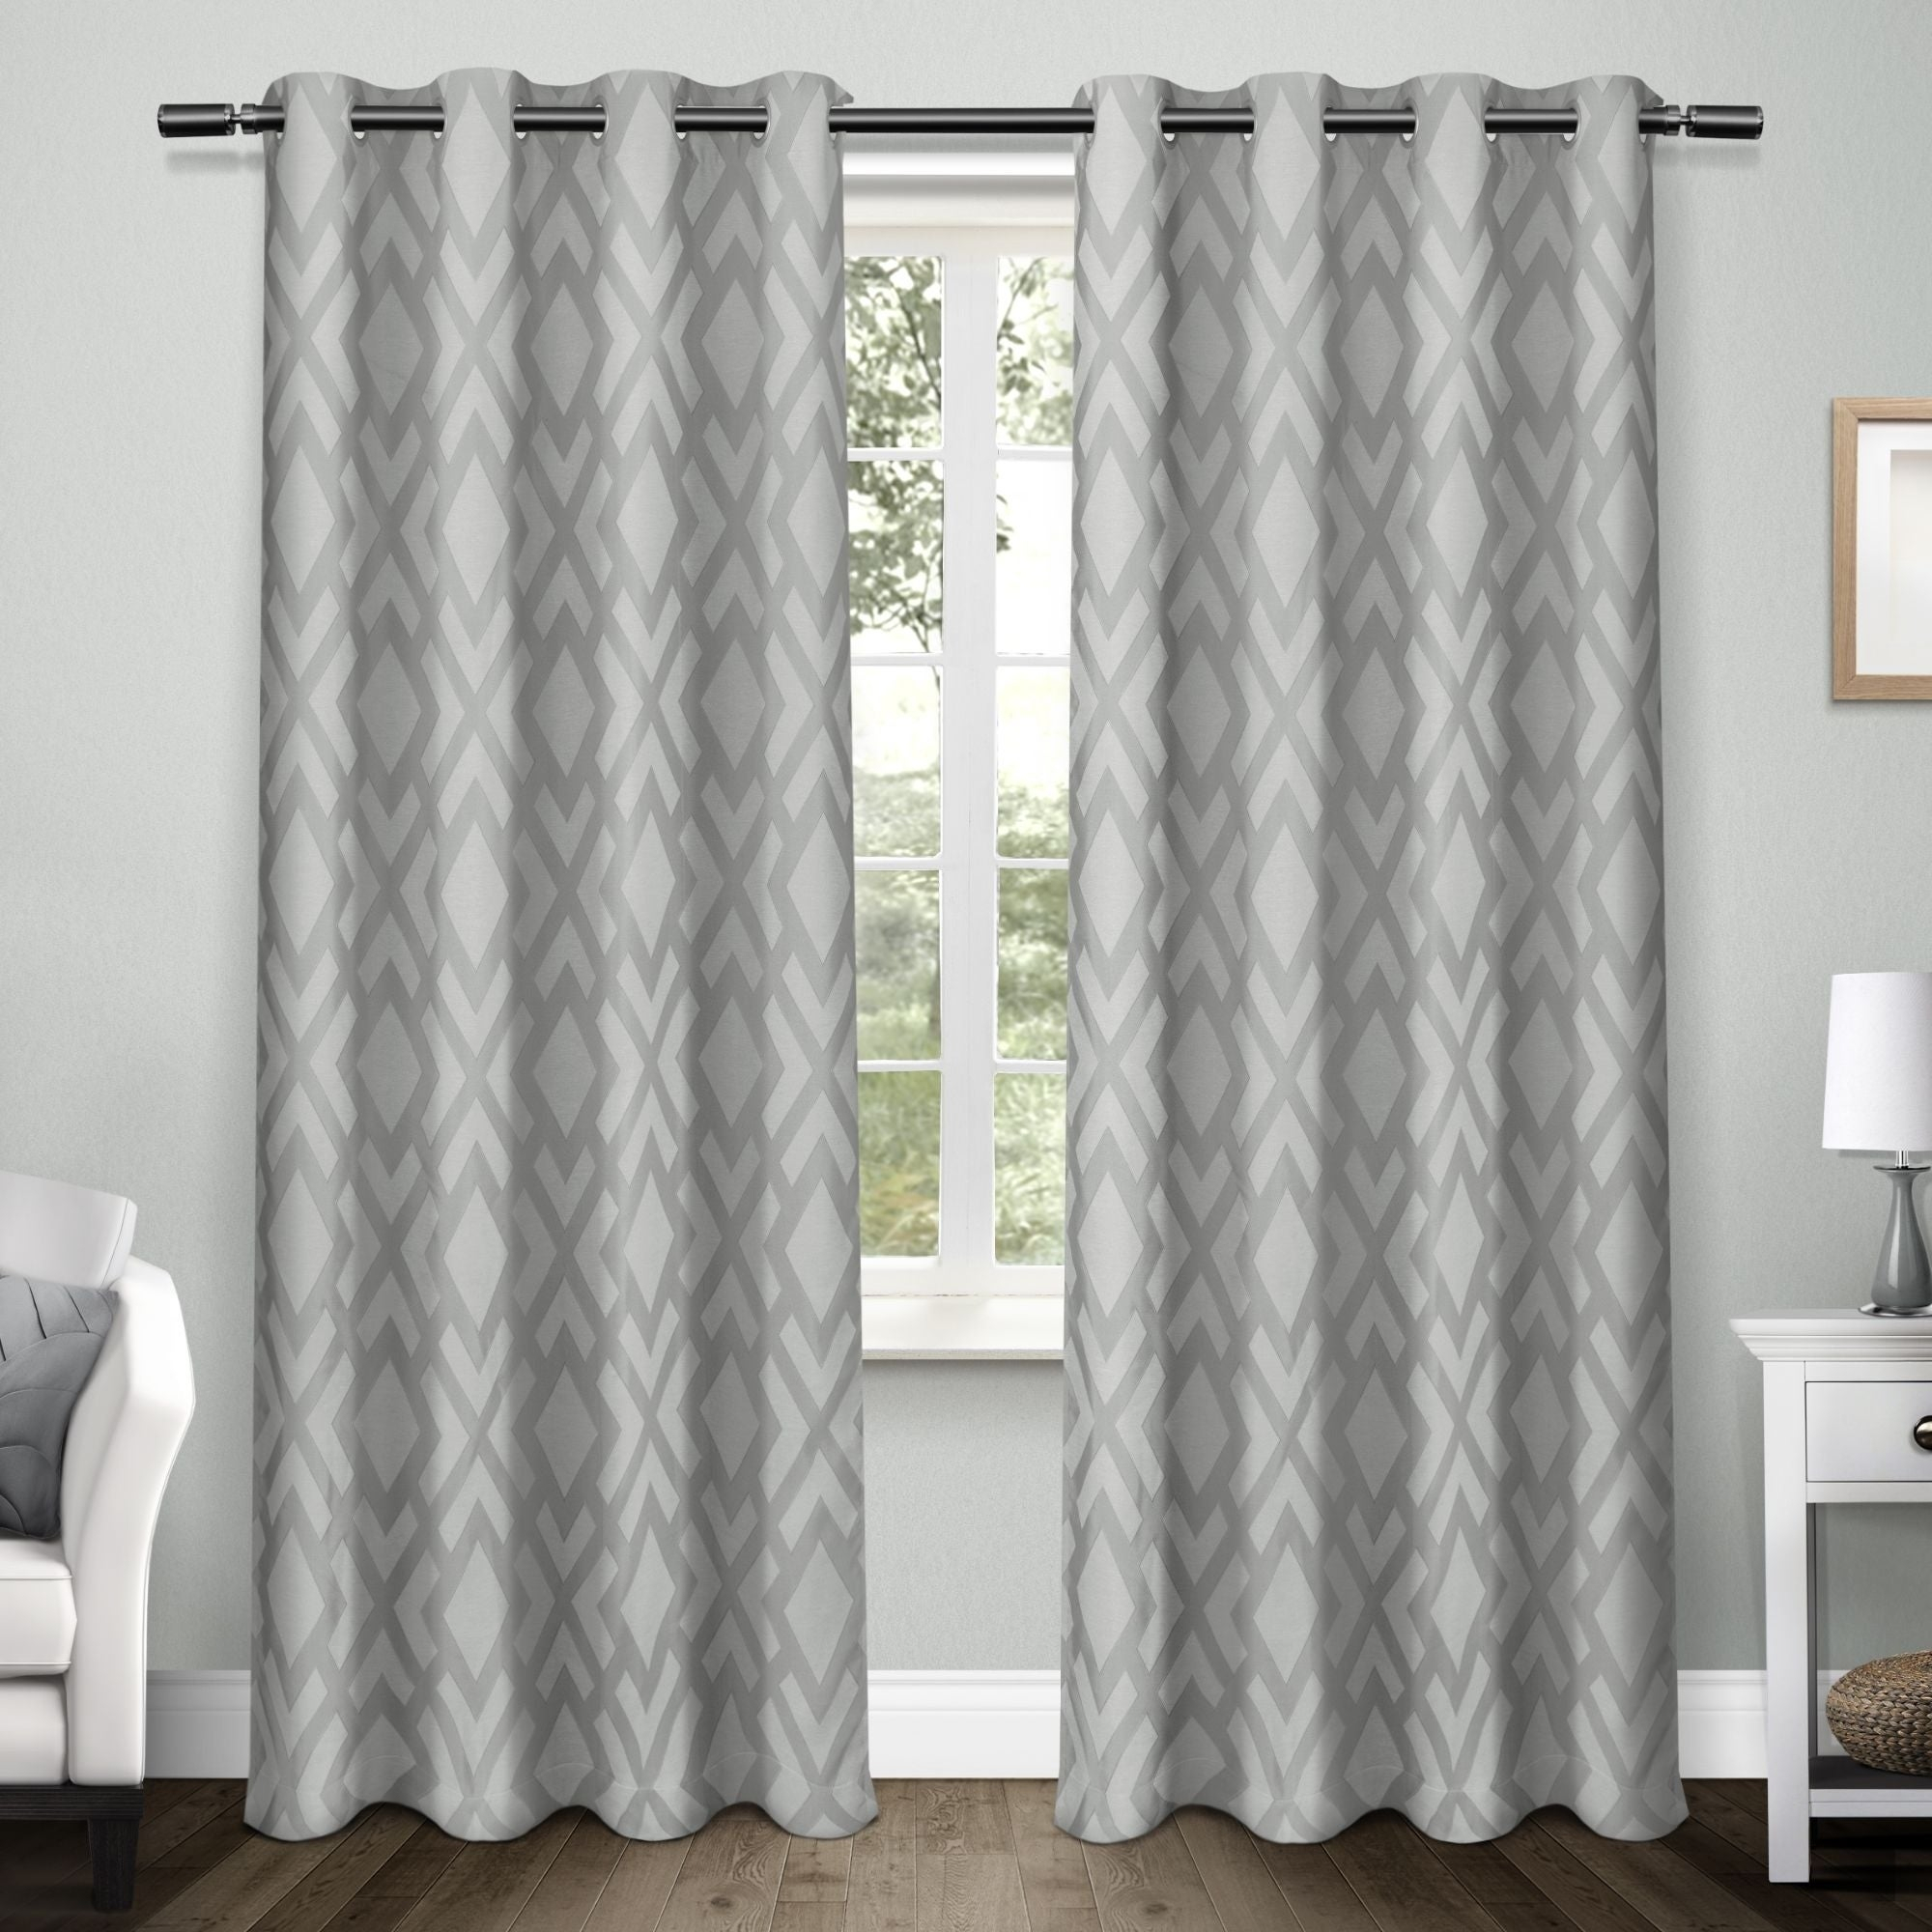 Ati Home Easton Thermal Woven Blackout Grommet Top Curtain Panel Pair Intended For Thermal Woven Blackout Grommet Top Curtain Panel Pairs (View 2 of 30)